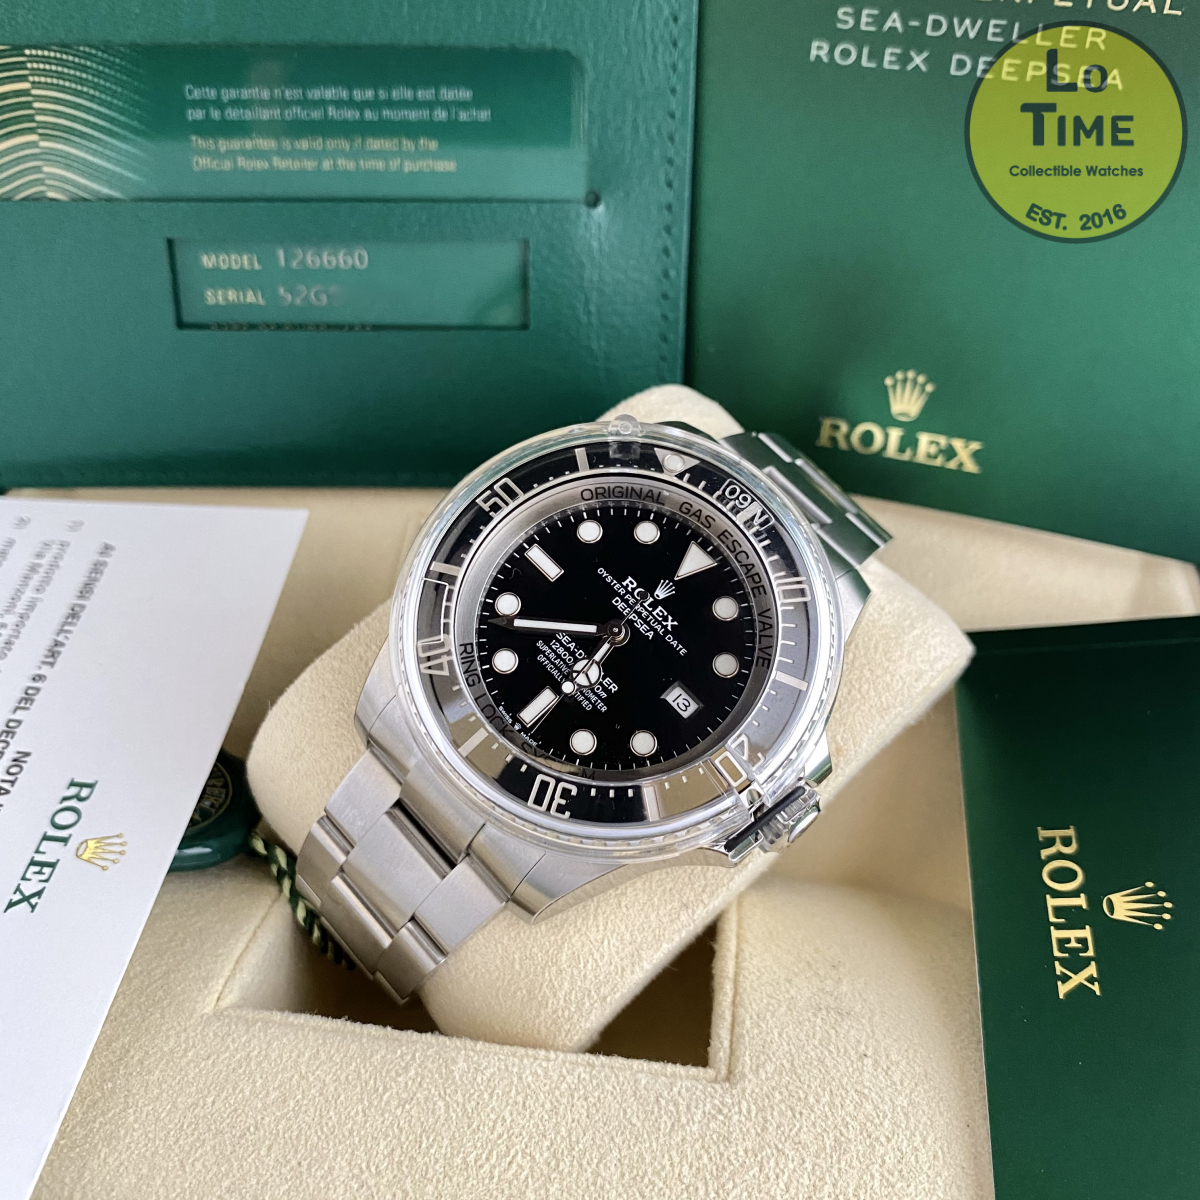 Rolex Sea-Dweller Deep sea 126660 NEW B/P